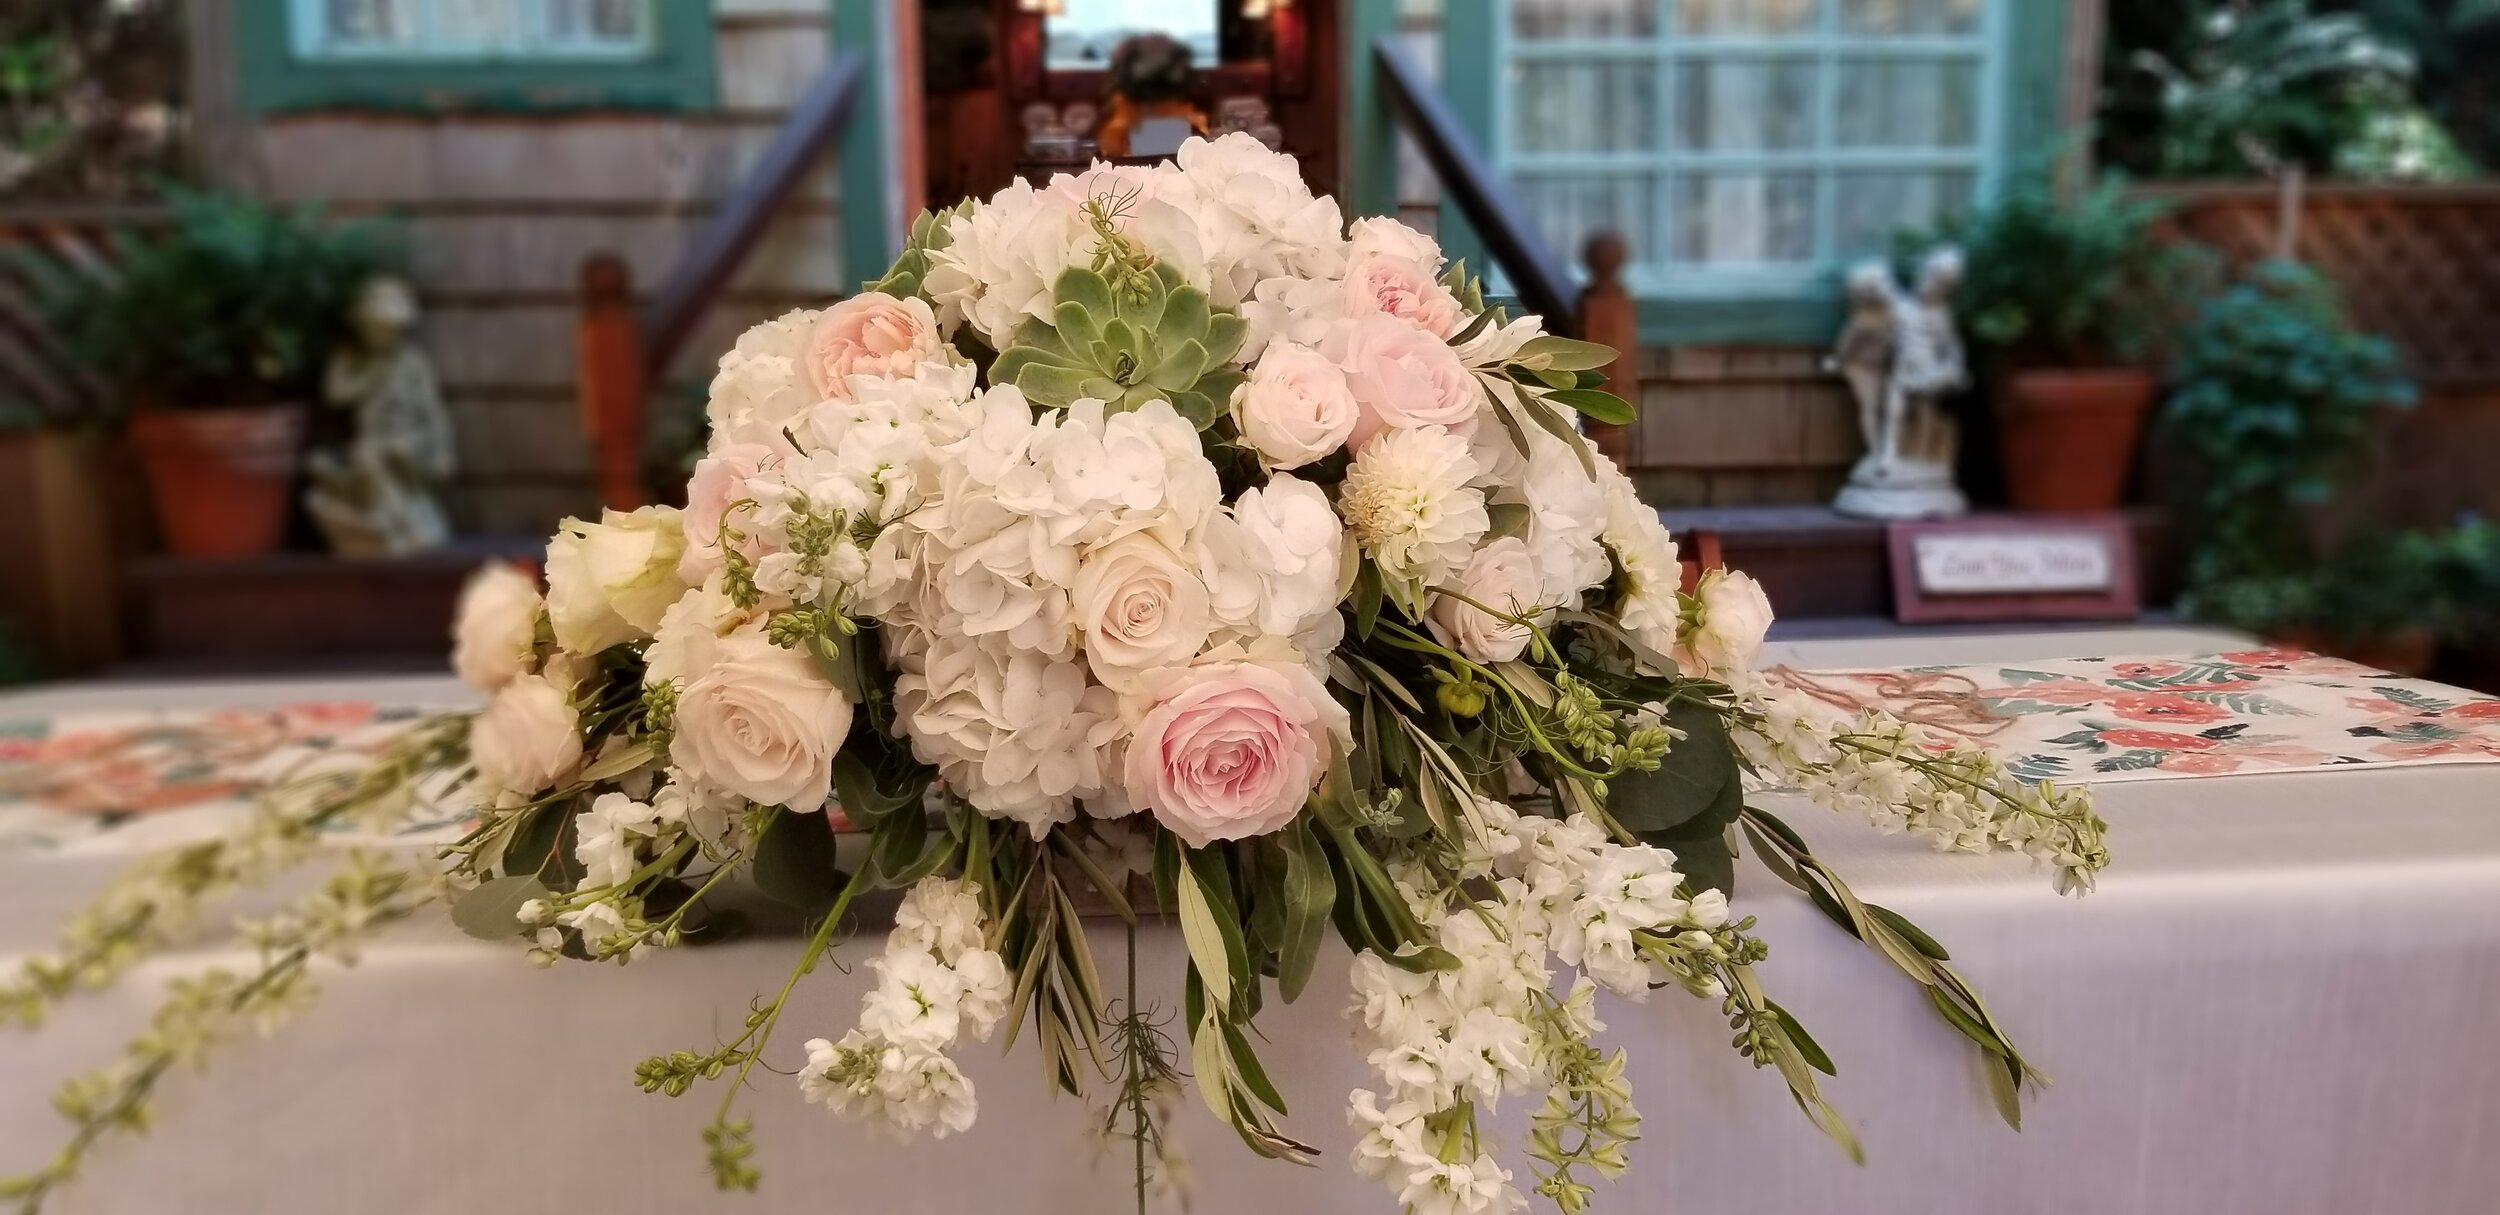 Sweetheart table flowers, lush pink, blush and white with succulent accents, placed on the edge. Secret Gardens Bodega Bay.